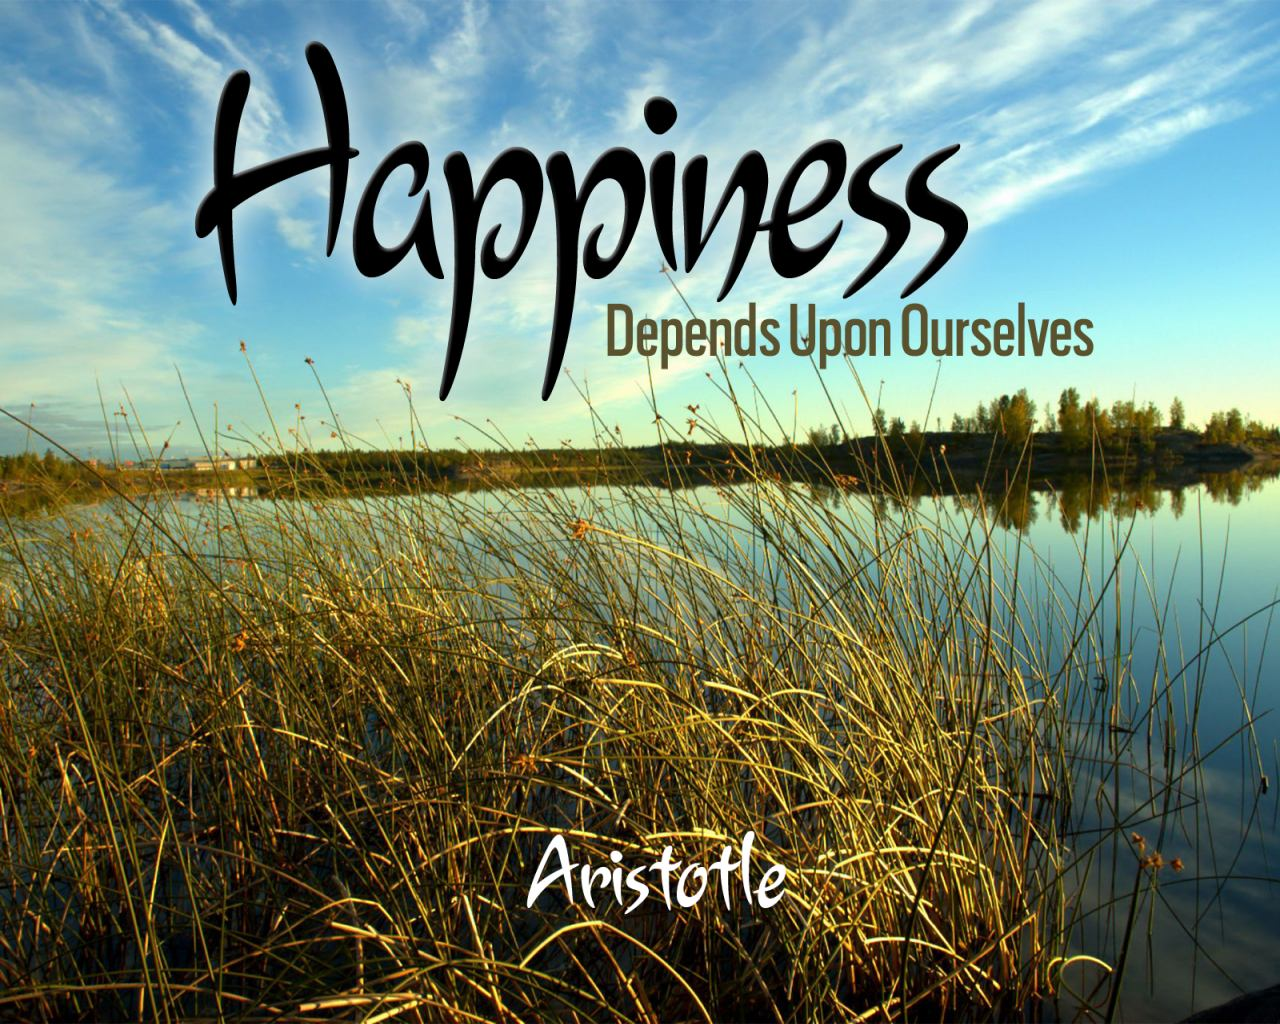 Happiness Depends On Ourselves Aristotle Quote: Happiness Depends On Ourselves Aristotle